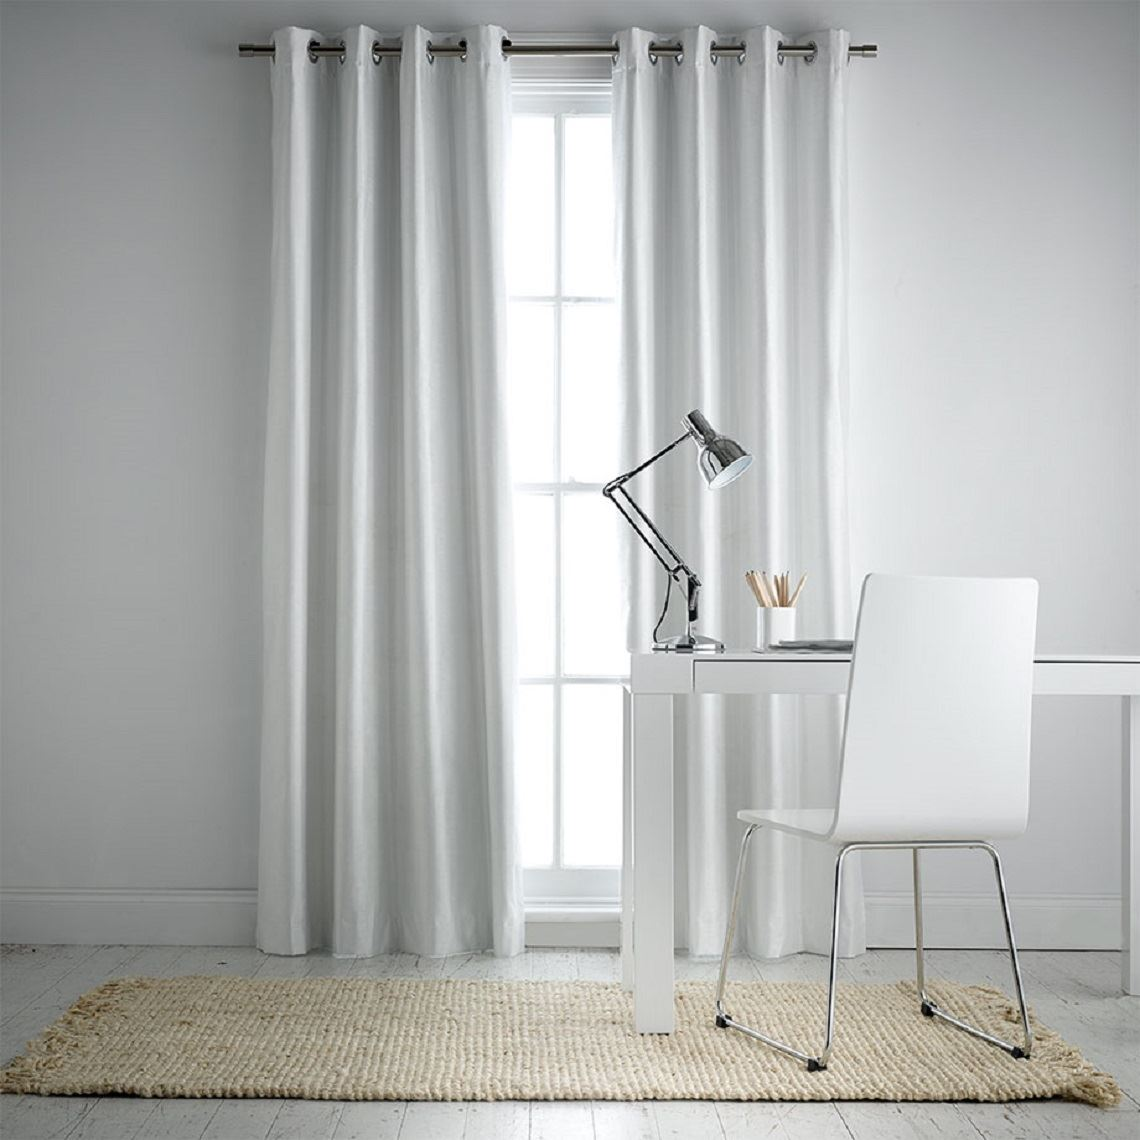 Aberdeen Blockout Eyelet Curtain Size W 180cm x D 0cm x H 250cm in White 100% Polyester/Acrylic Flock Coating/Stainless Steel Freedom by Freedom, a Curtains for sale on Style Sourcebook